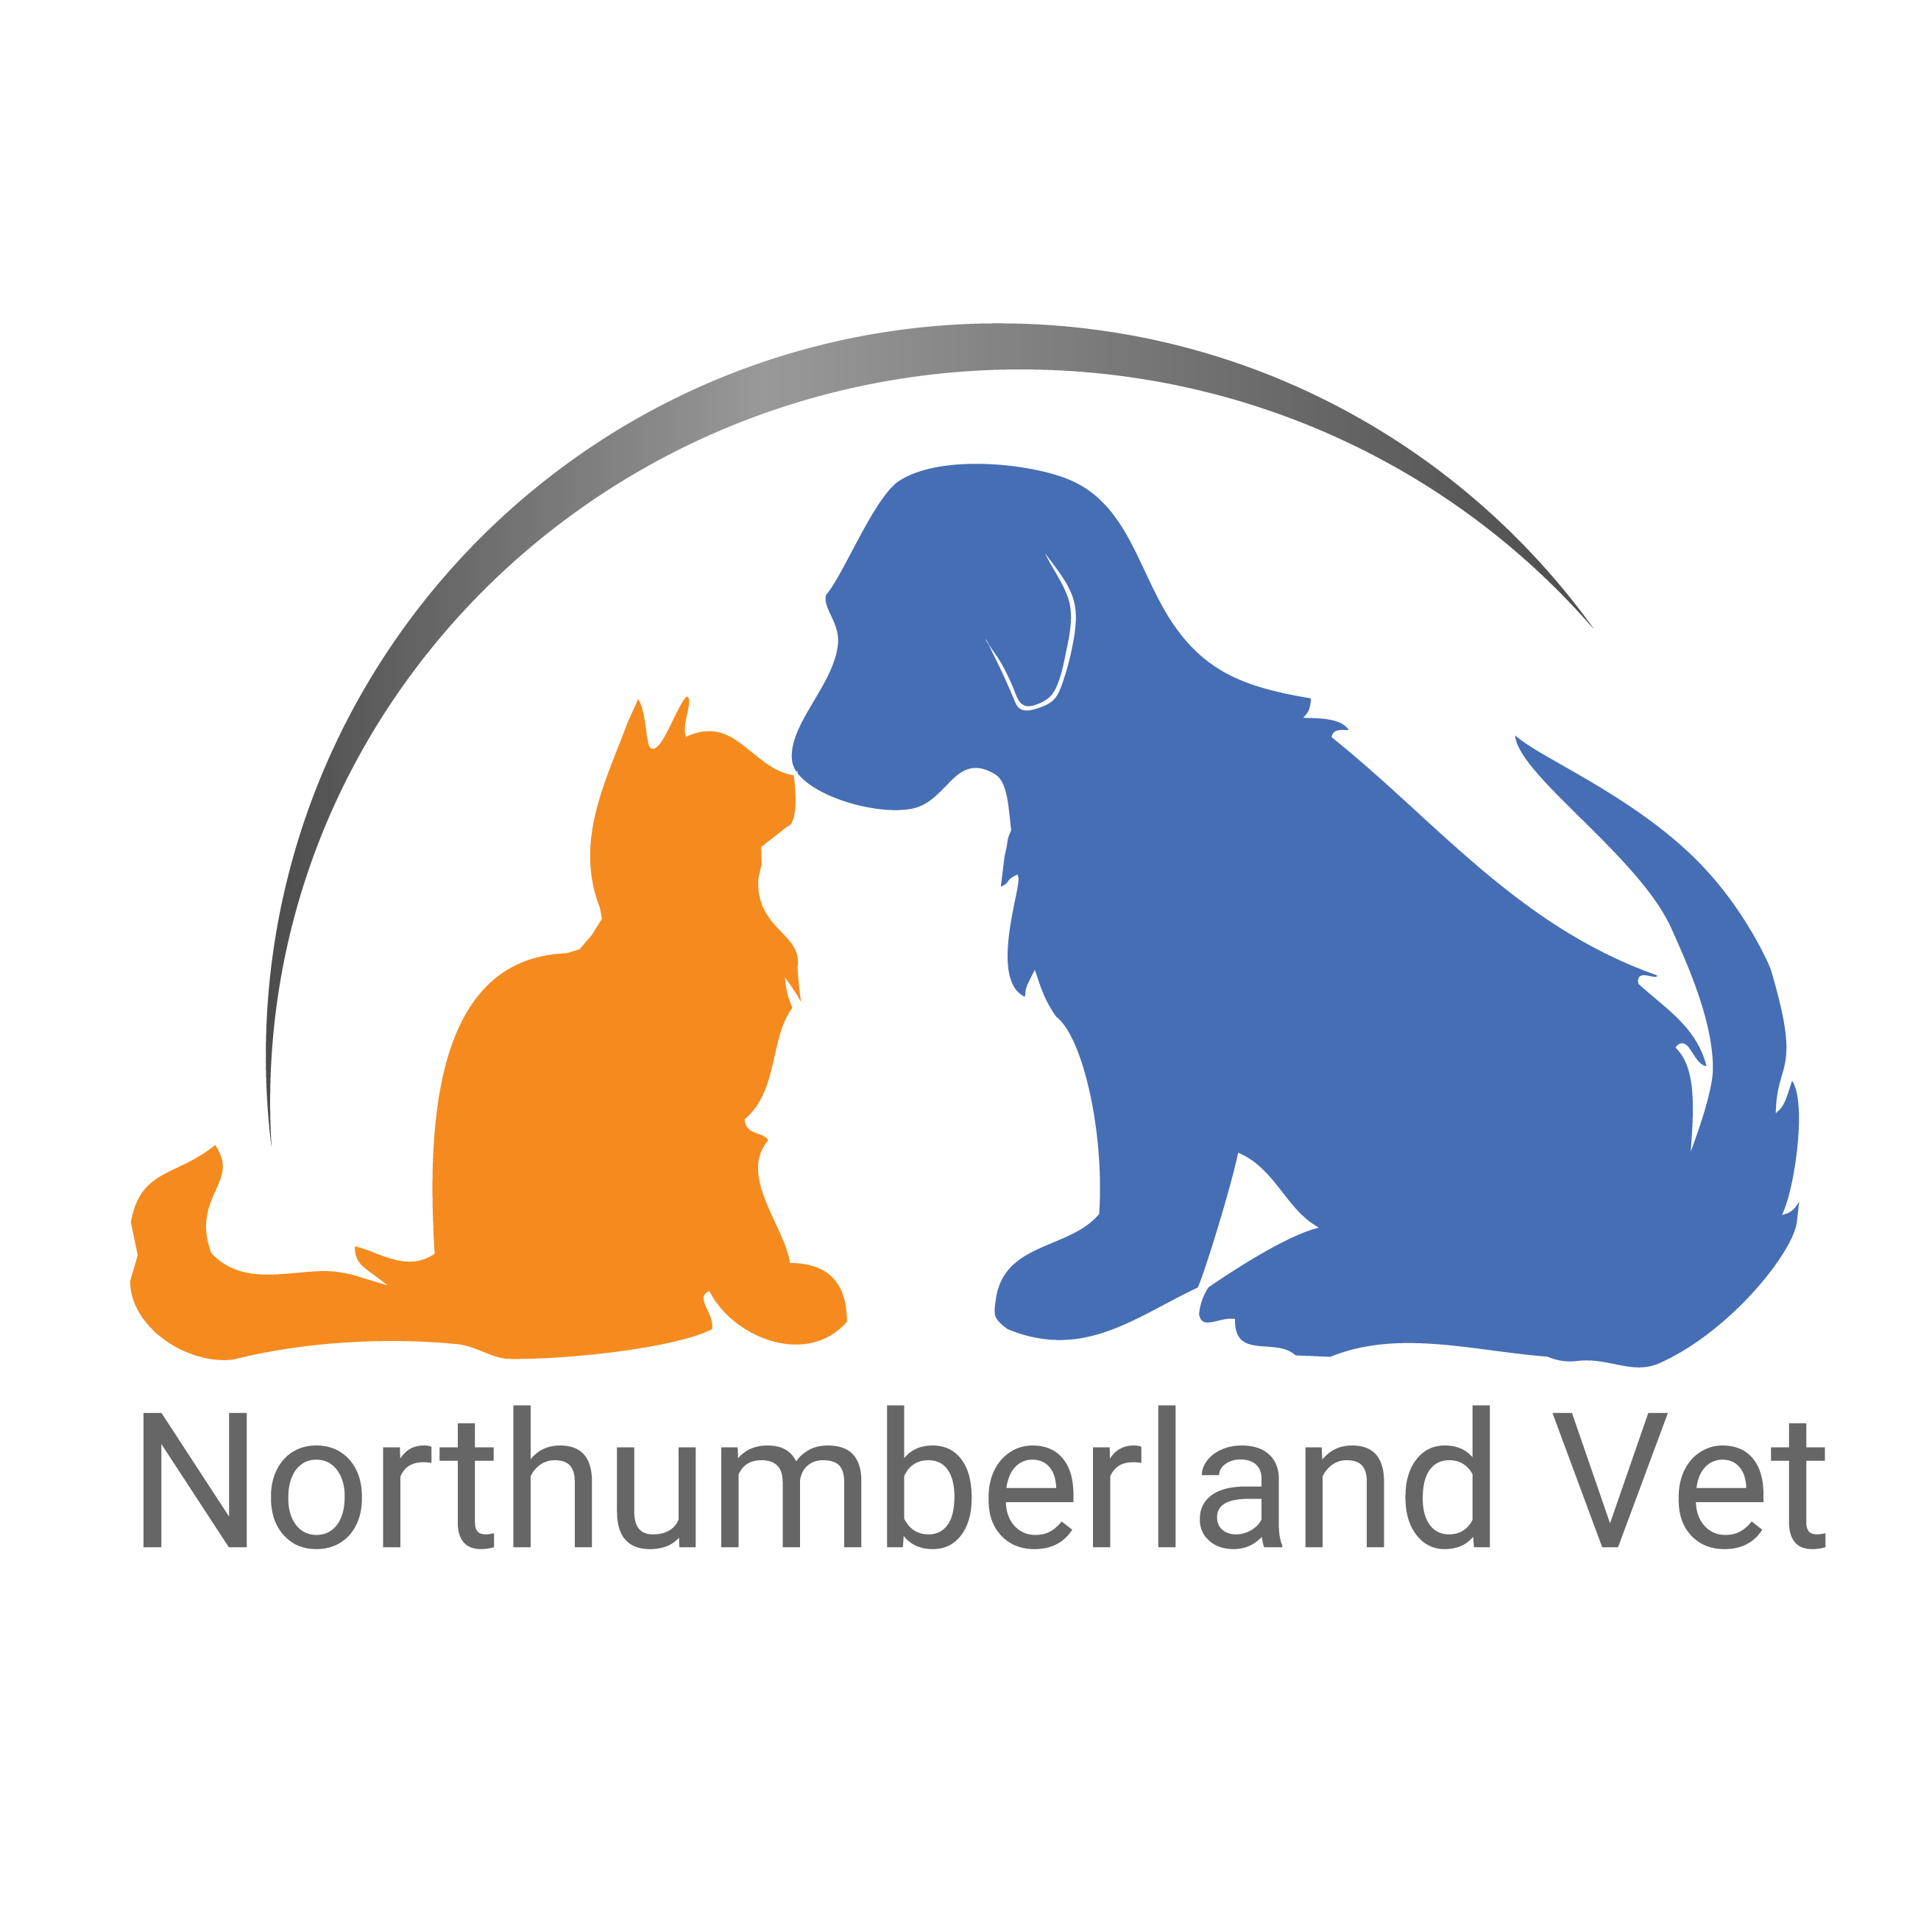 Dentist clipart pet dental. Dentistry northumberland veterinary services